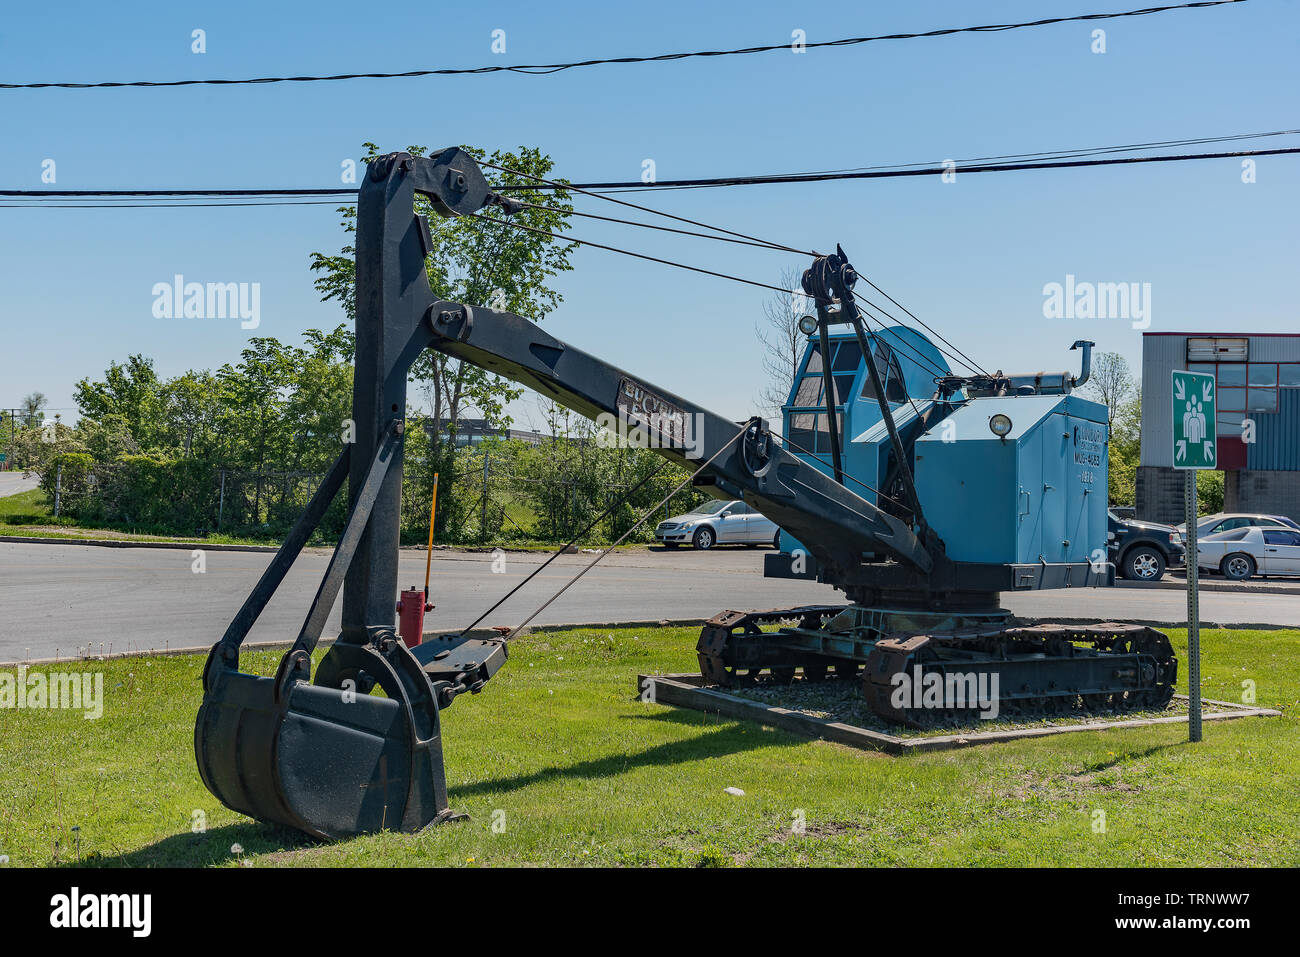 Old Excavator-Digger used as advertising. - Stock Image